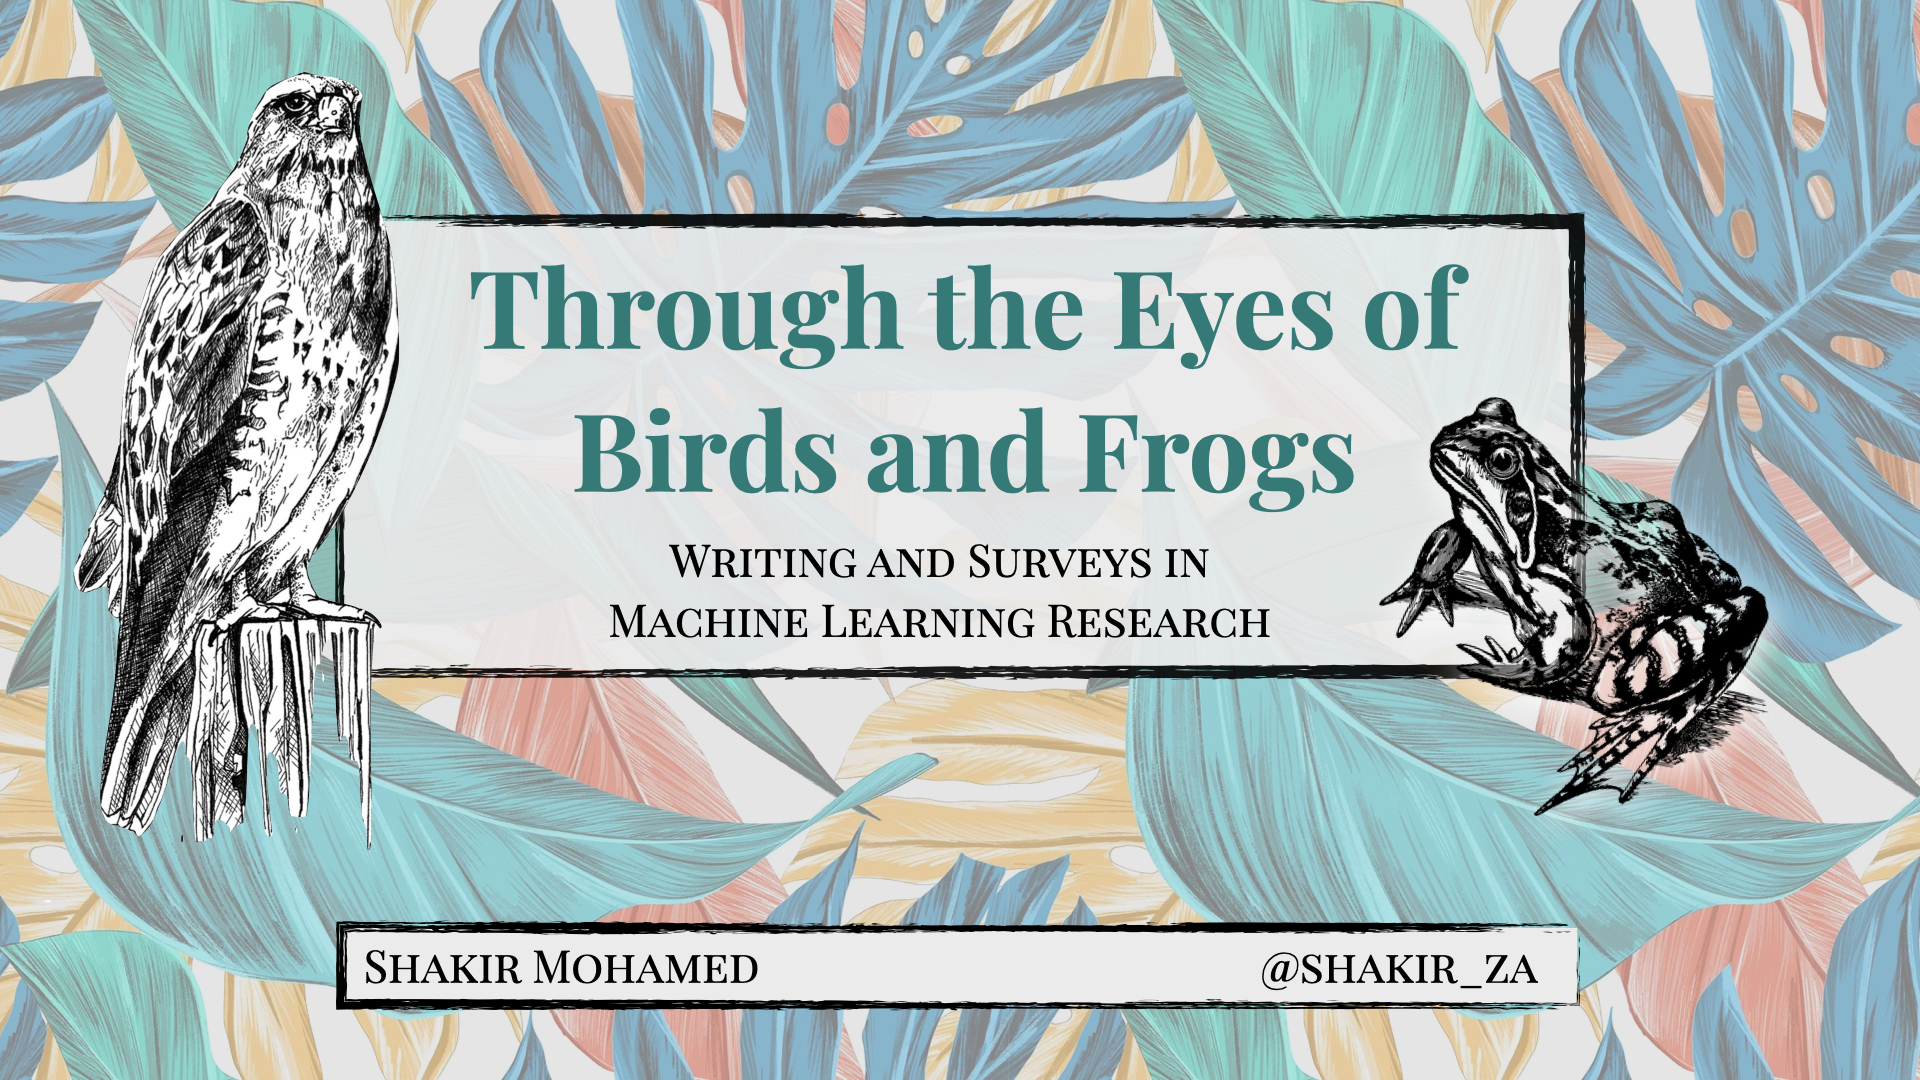 Through the Eyes of Birds and Frogs: Writing and Surveys in Machine Learning Research